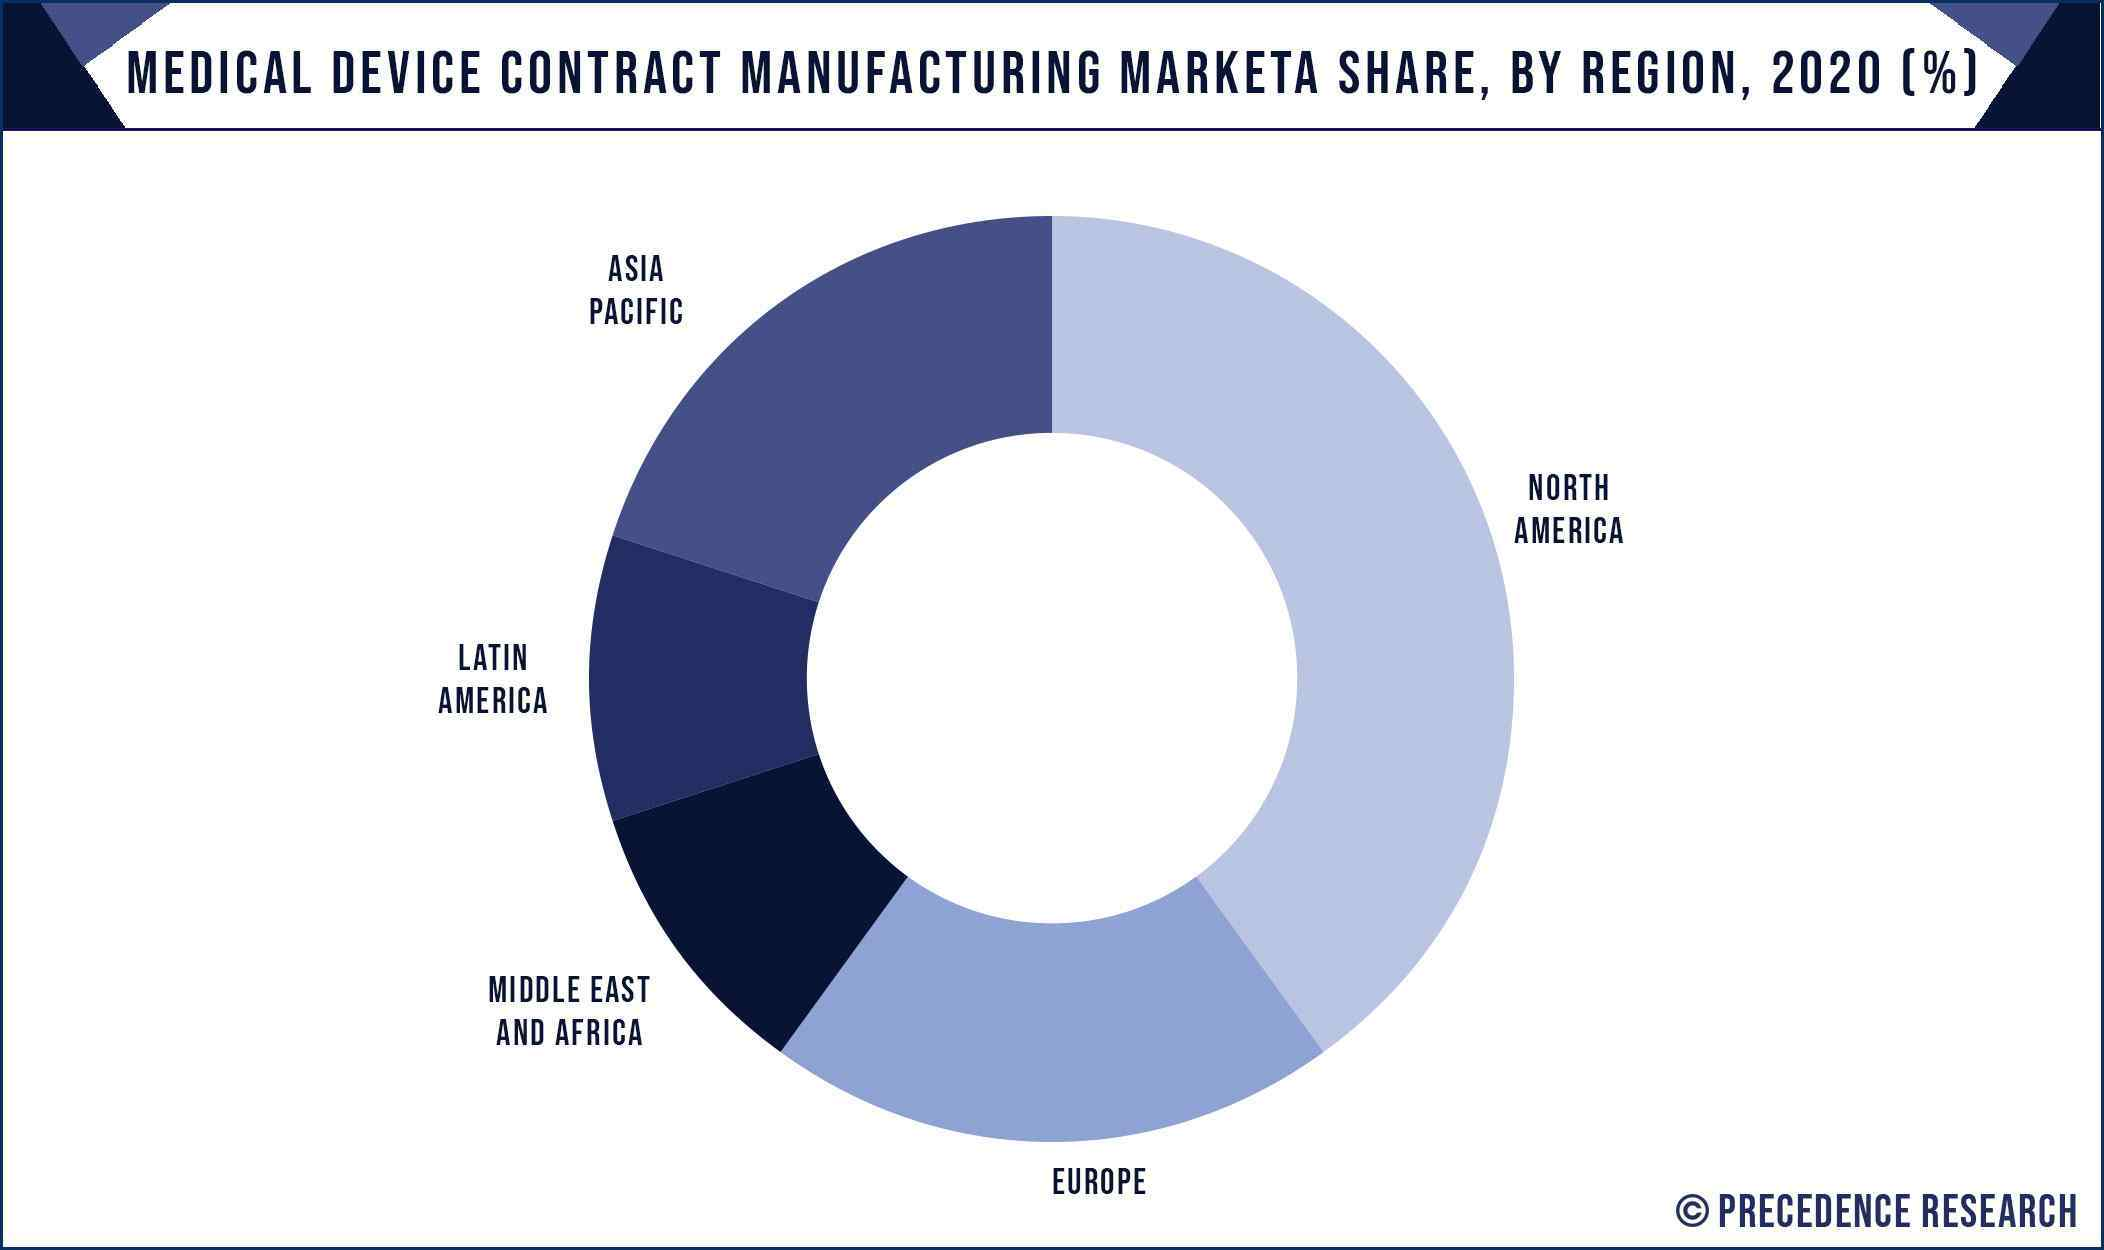 Medical Device Contract Manufacturing Market Share, By Region, 2020 (%)